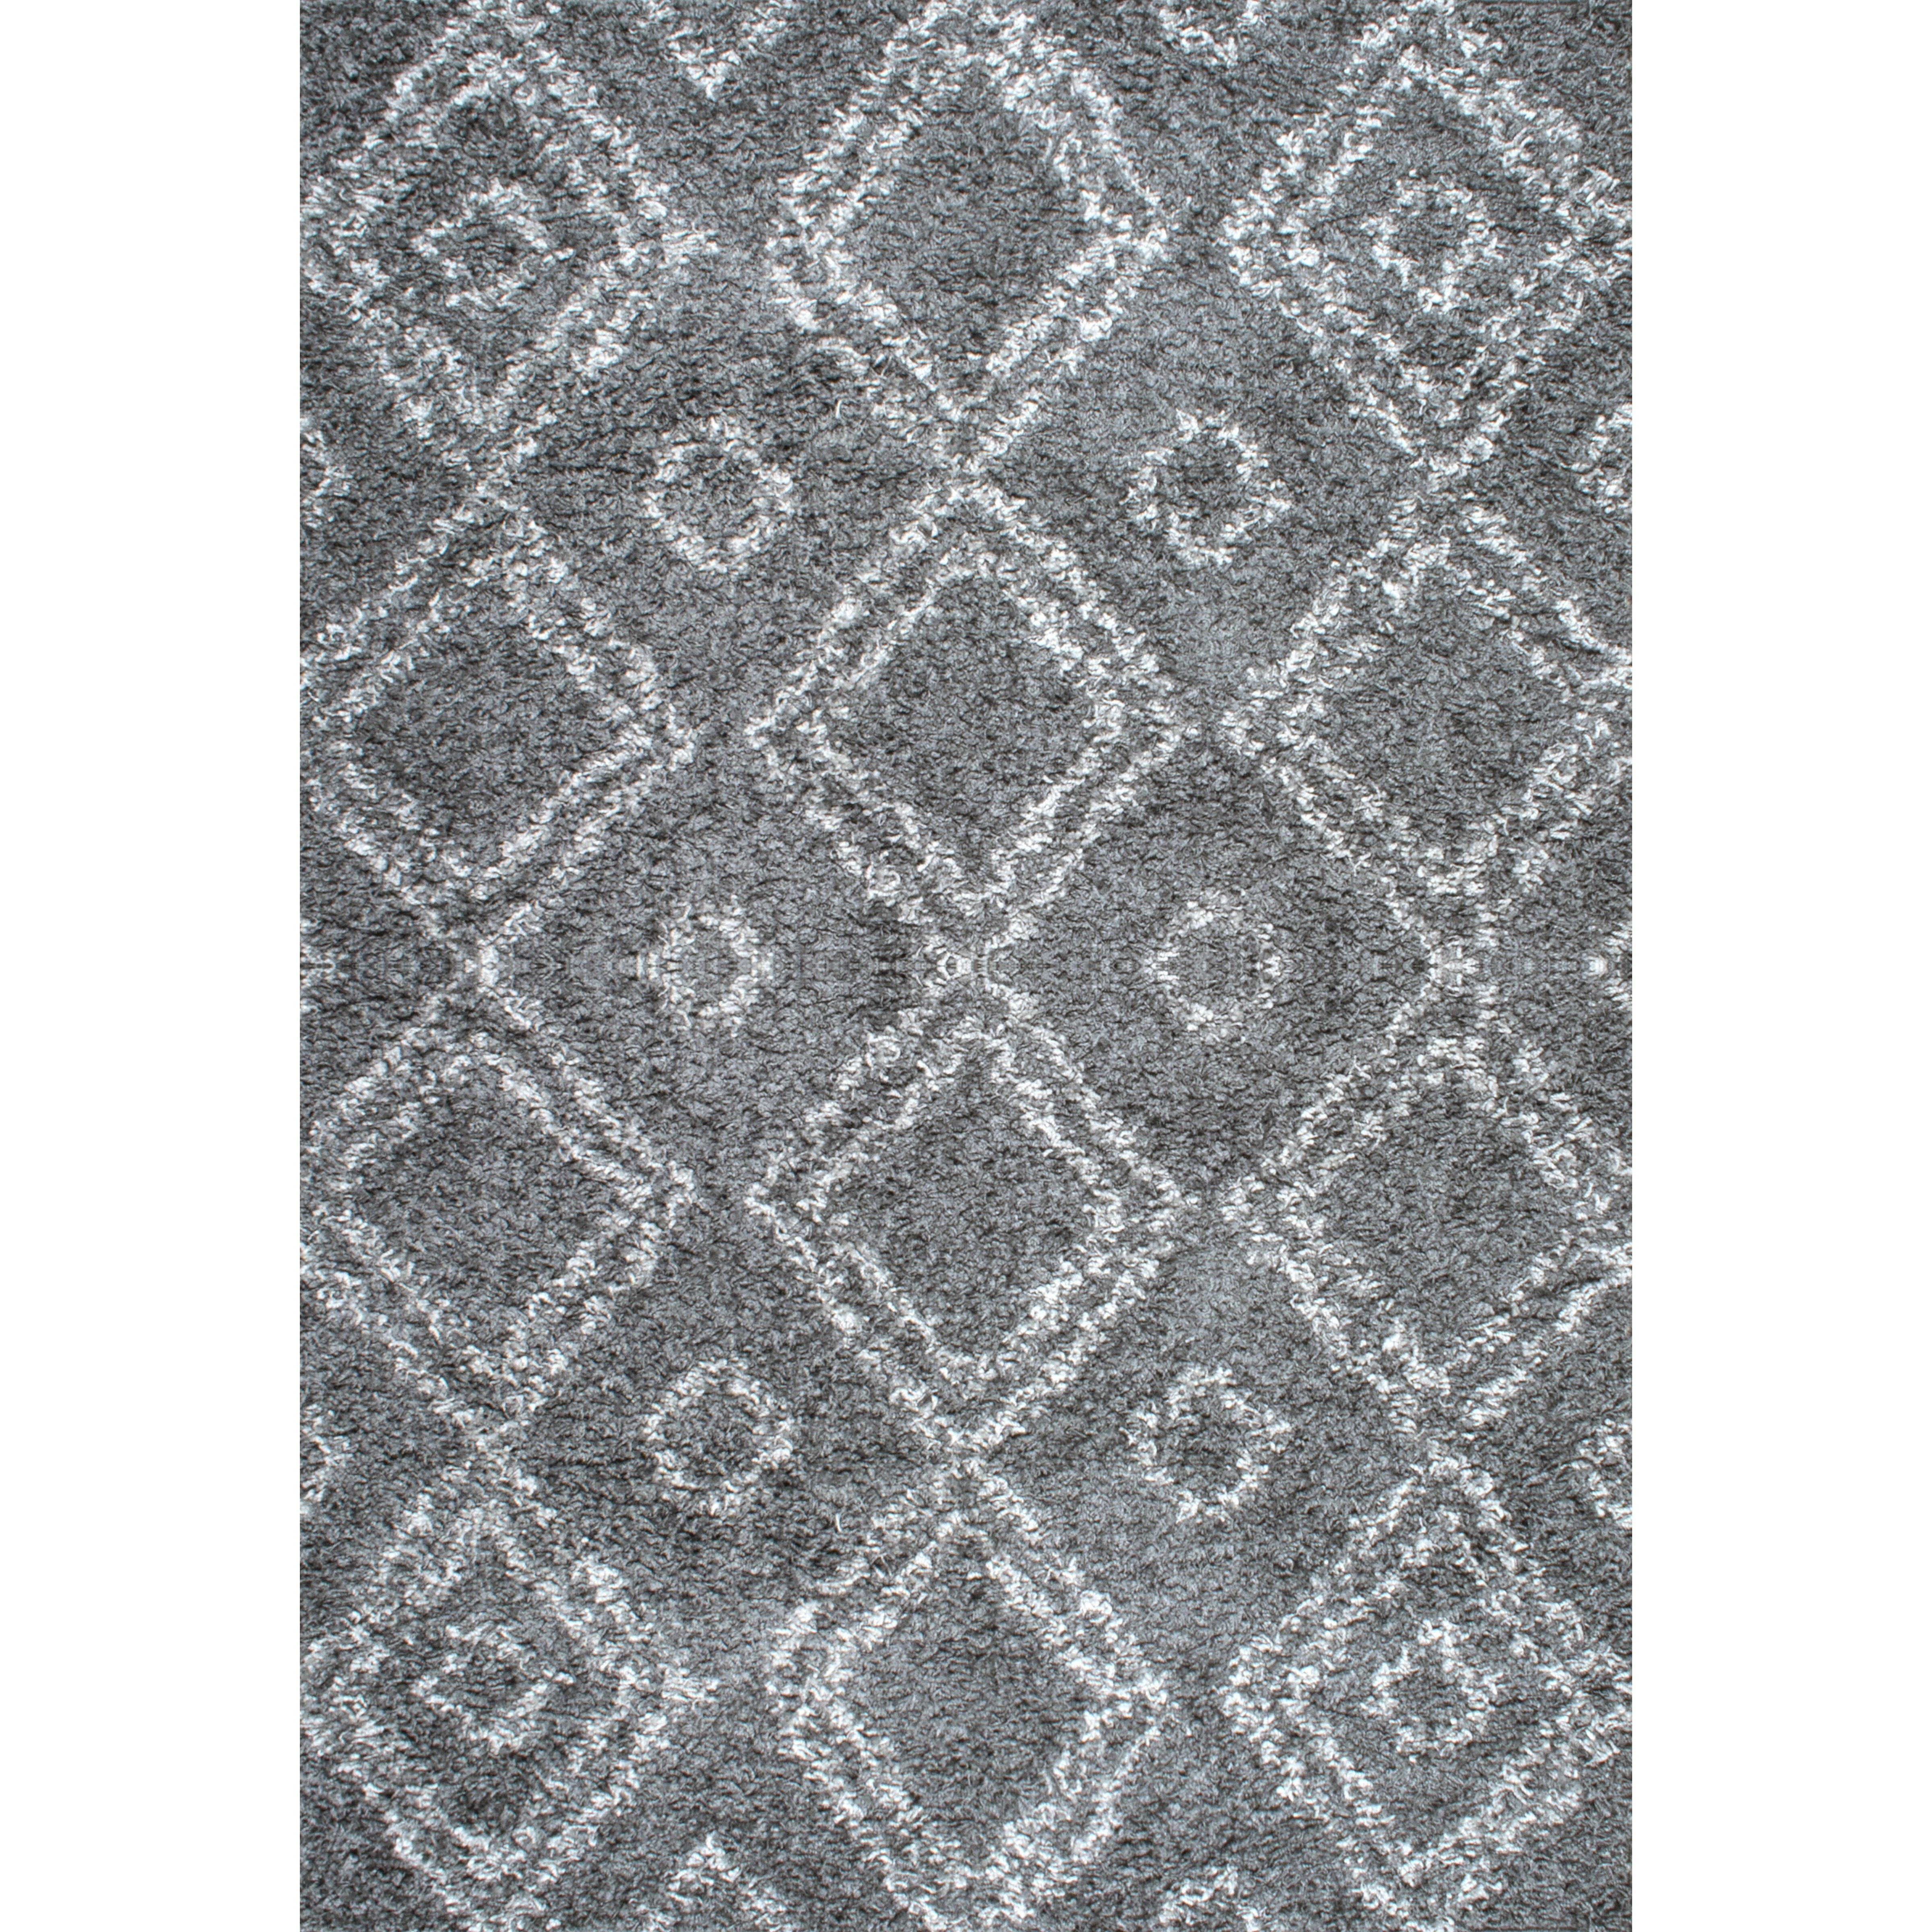 Alexa gray shag area rug wayfair Gray shag rug